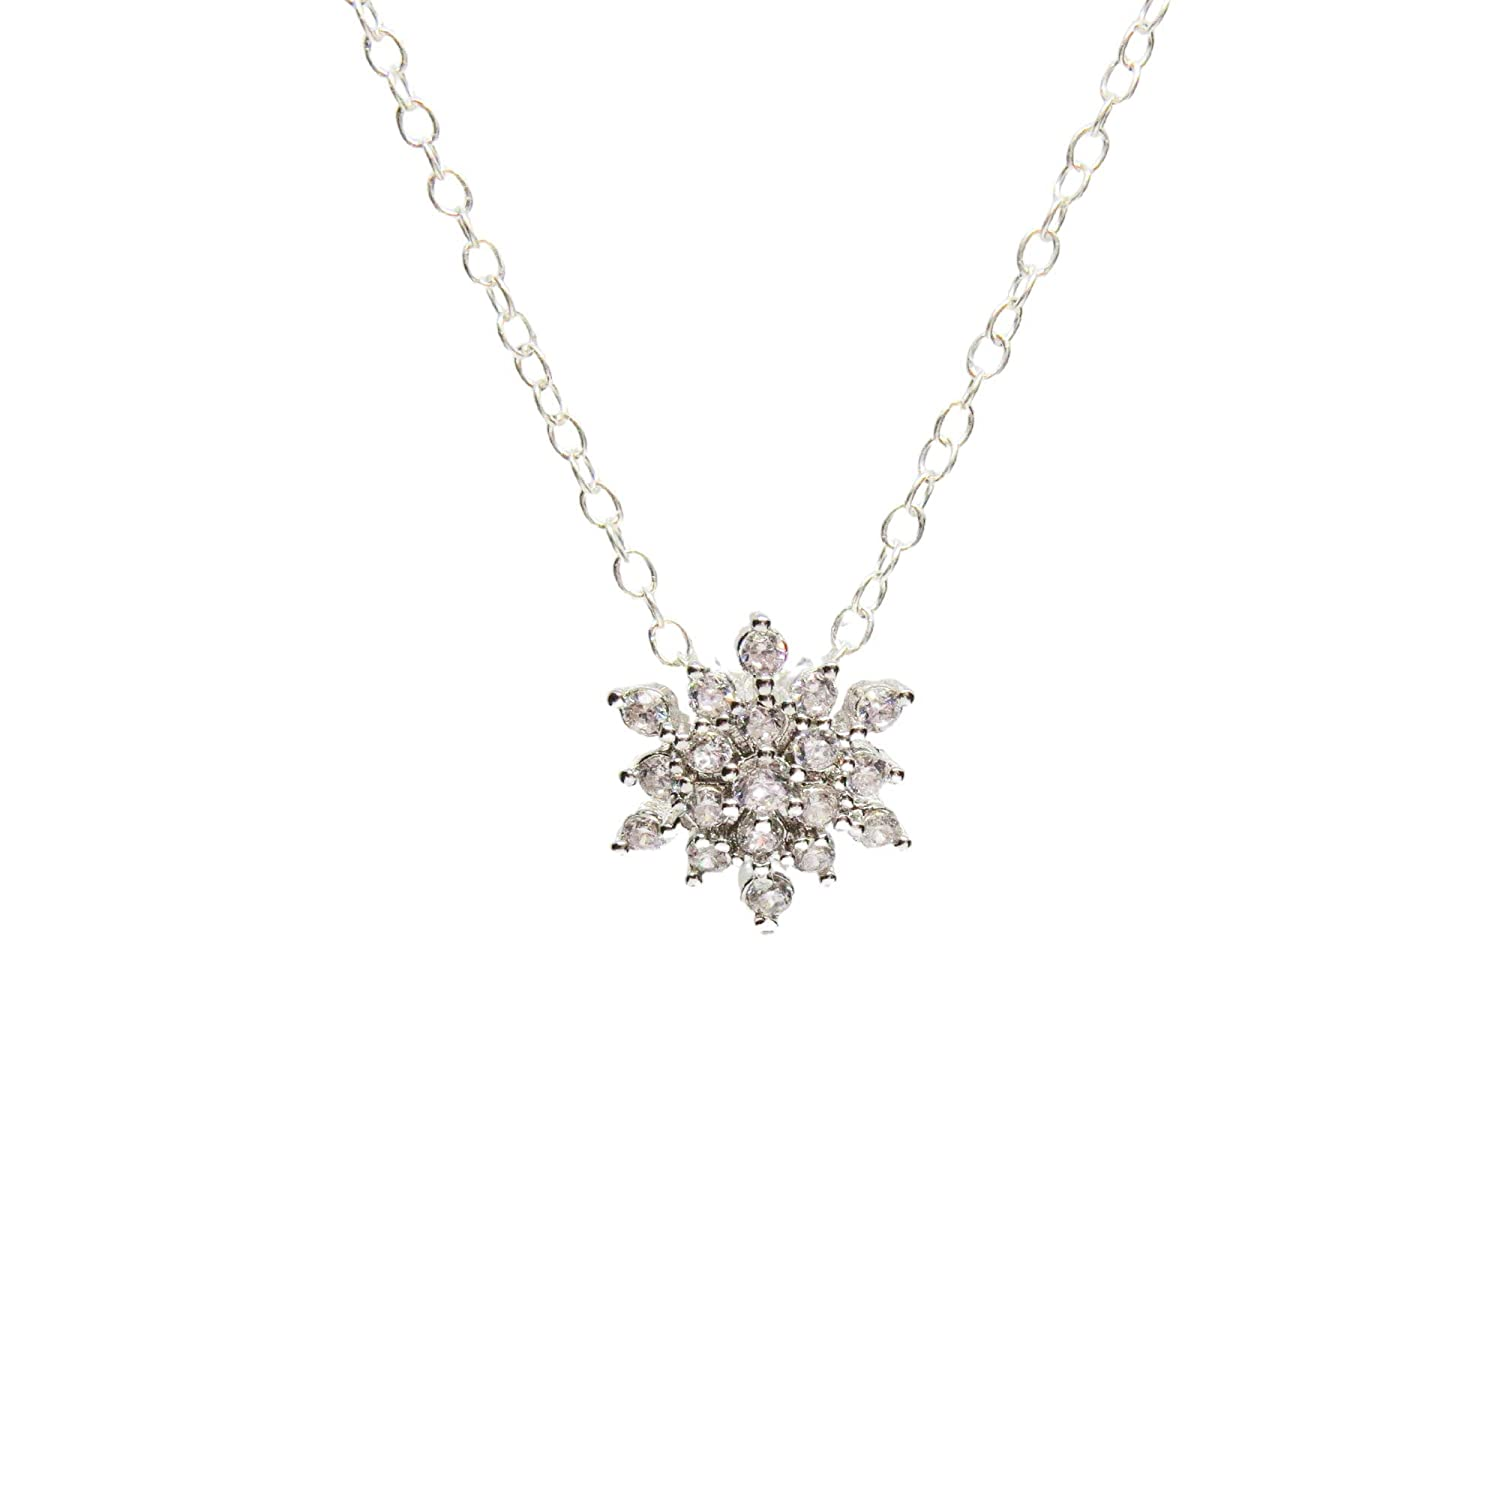 Snowflake Necklace Sterling Super sale period limited f Silver Gifts Pendant